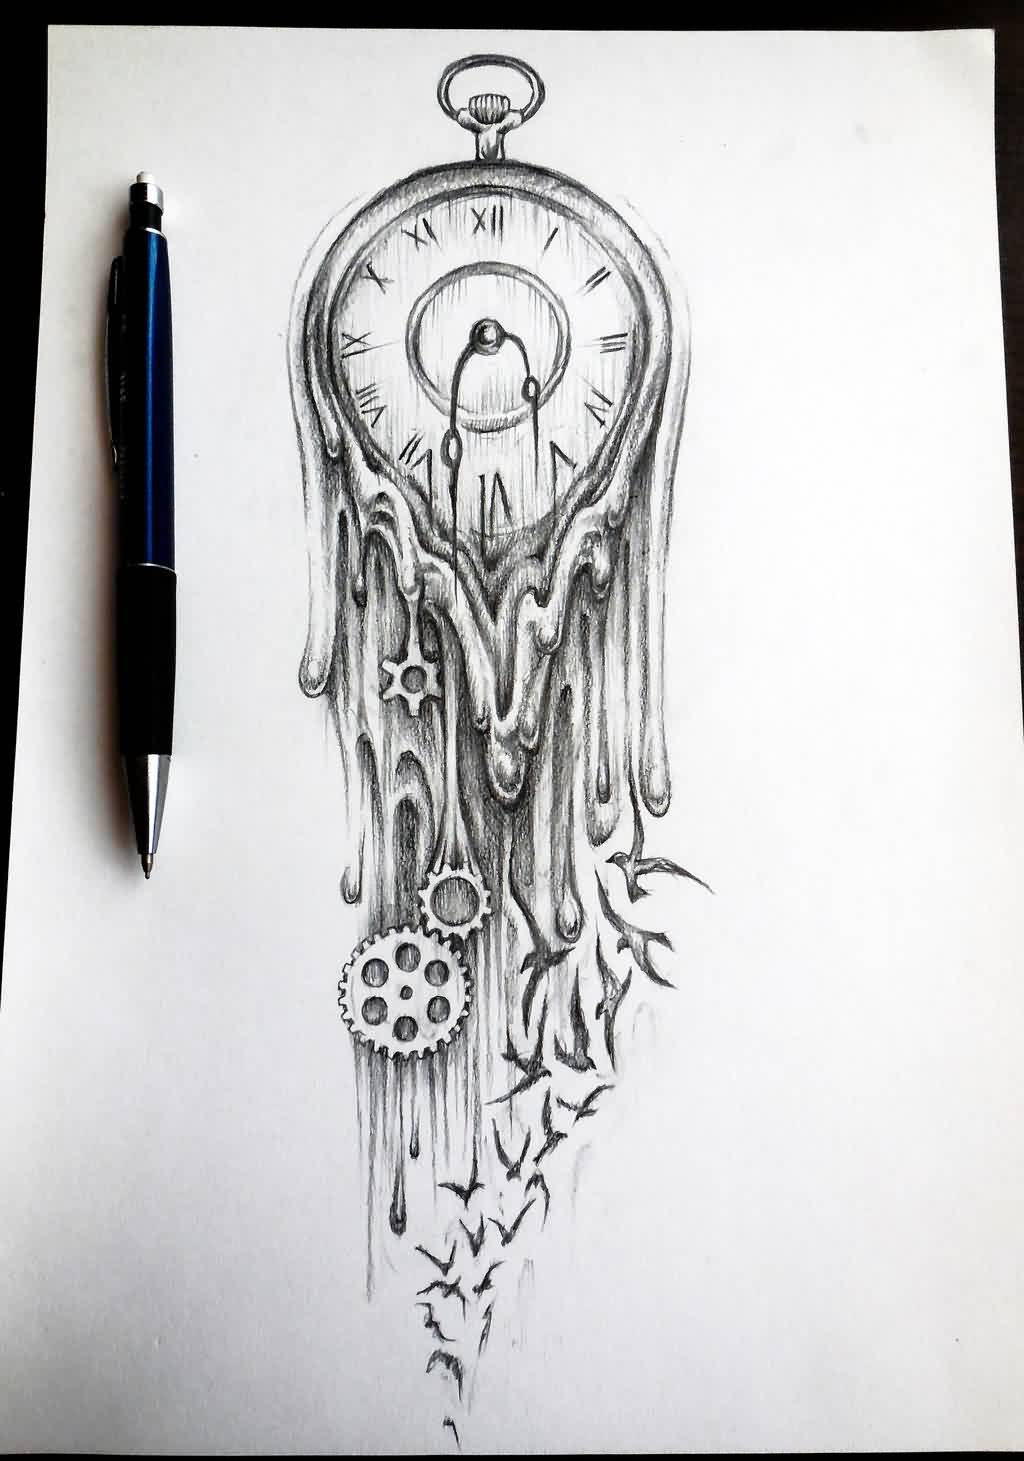 Melting Clock And Bird Tattoos Sketch